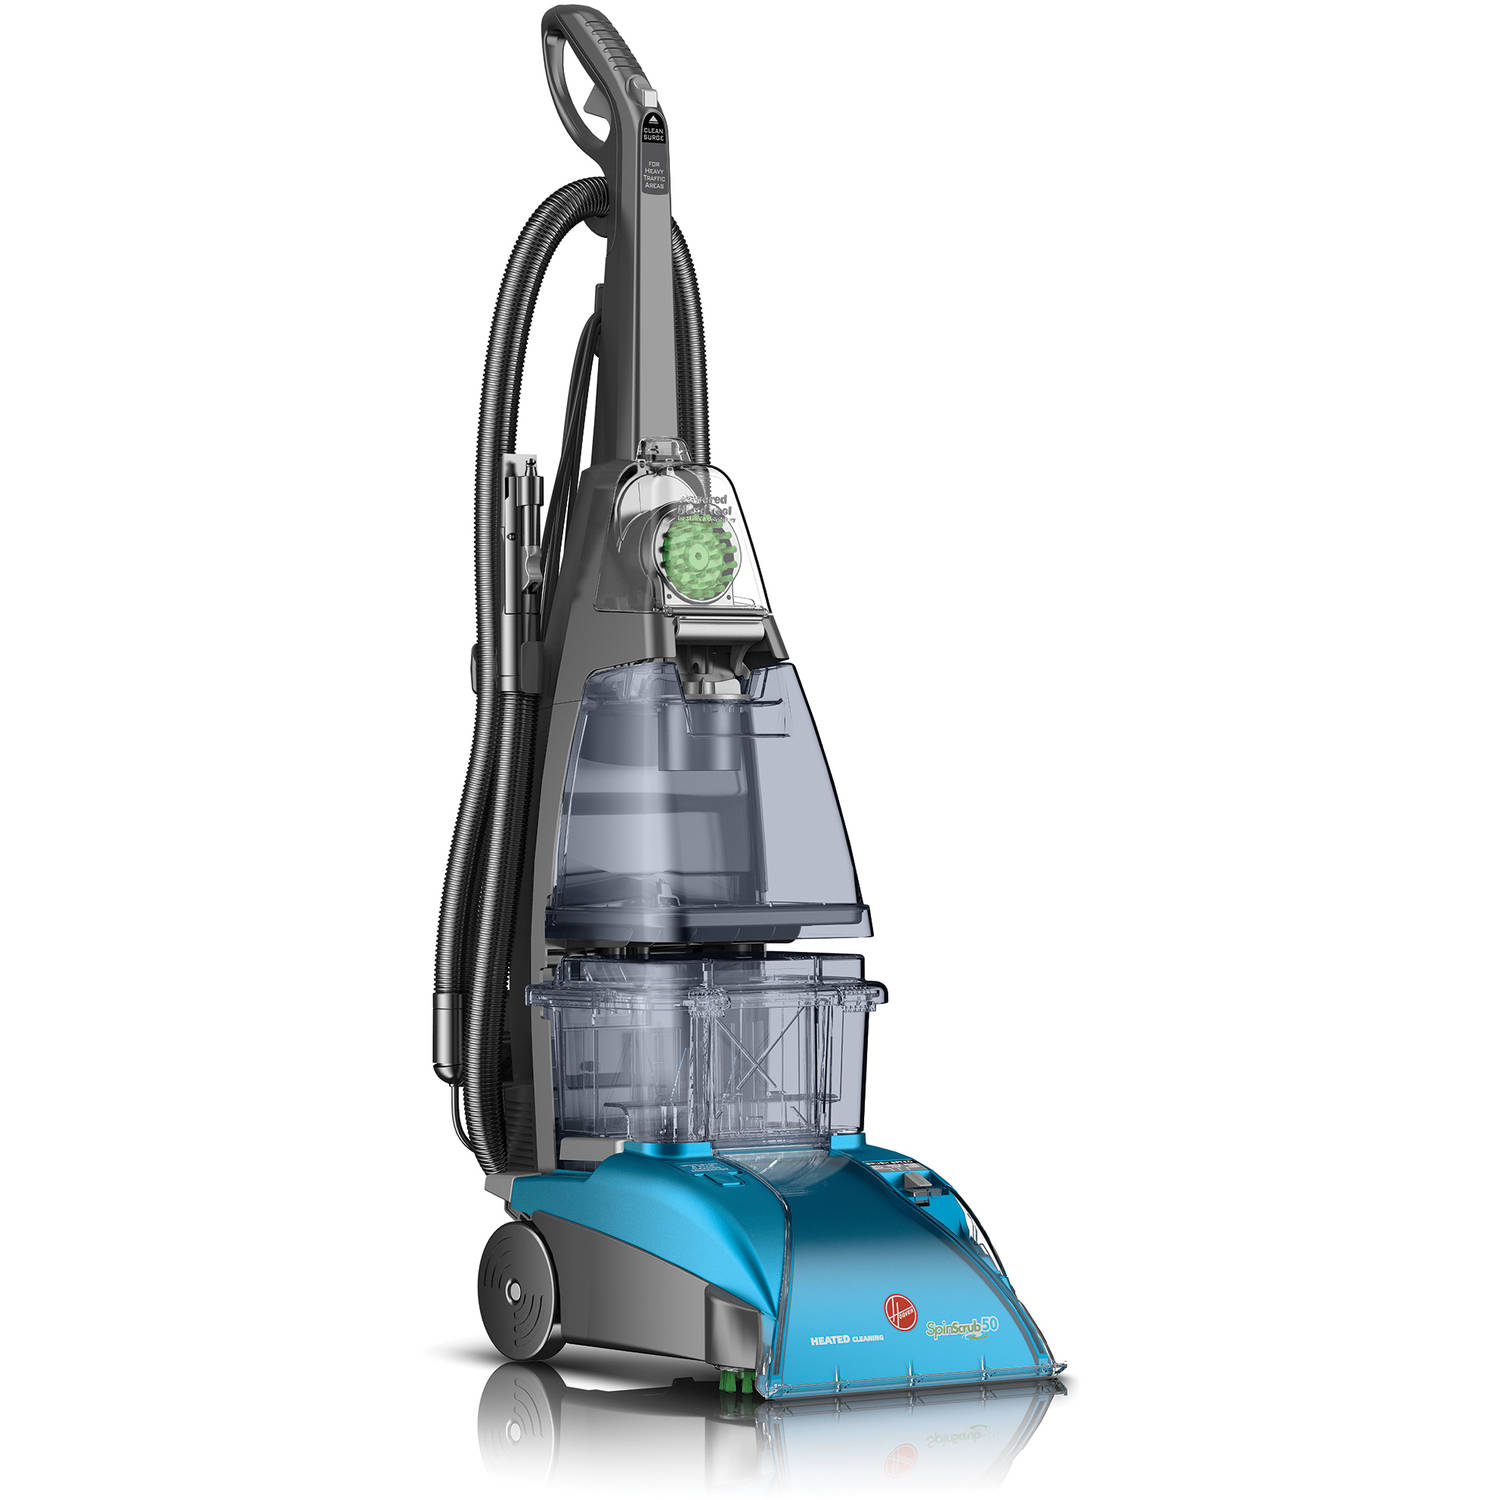 Hoover Steamvac Carpet Cleaner With Clean Surge Shespeaks